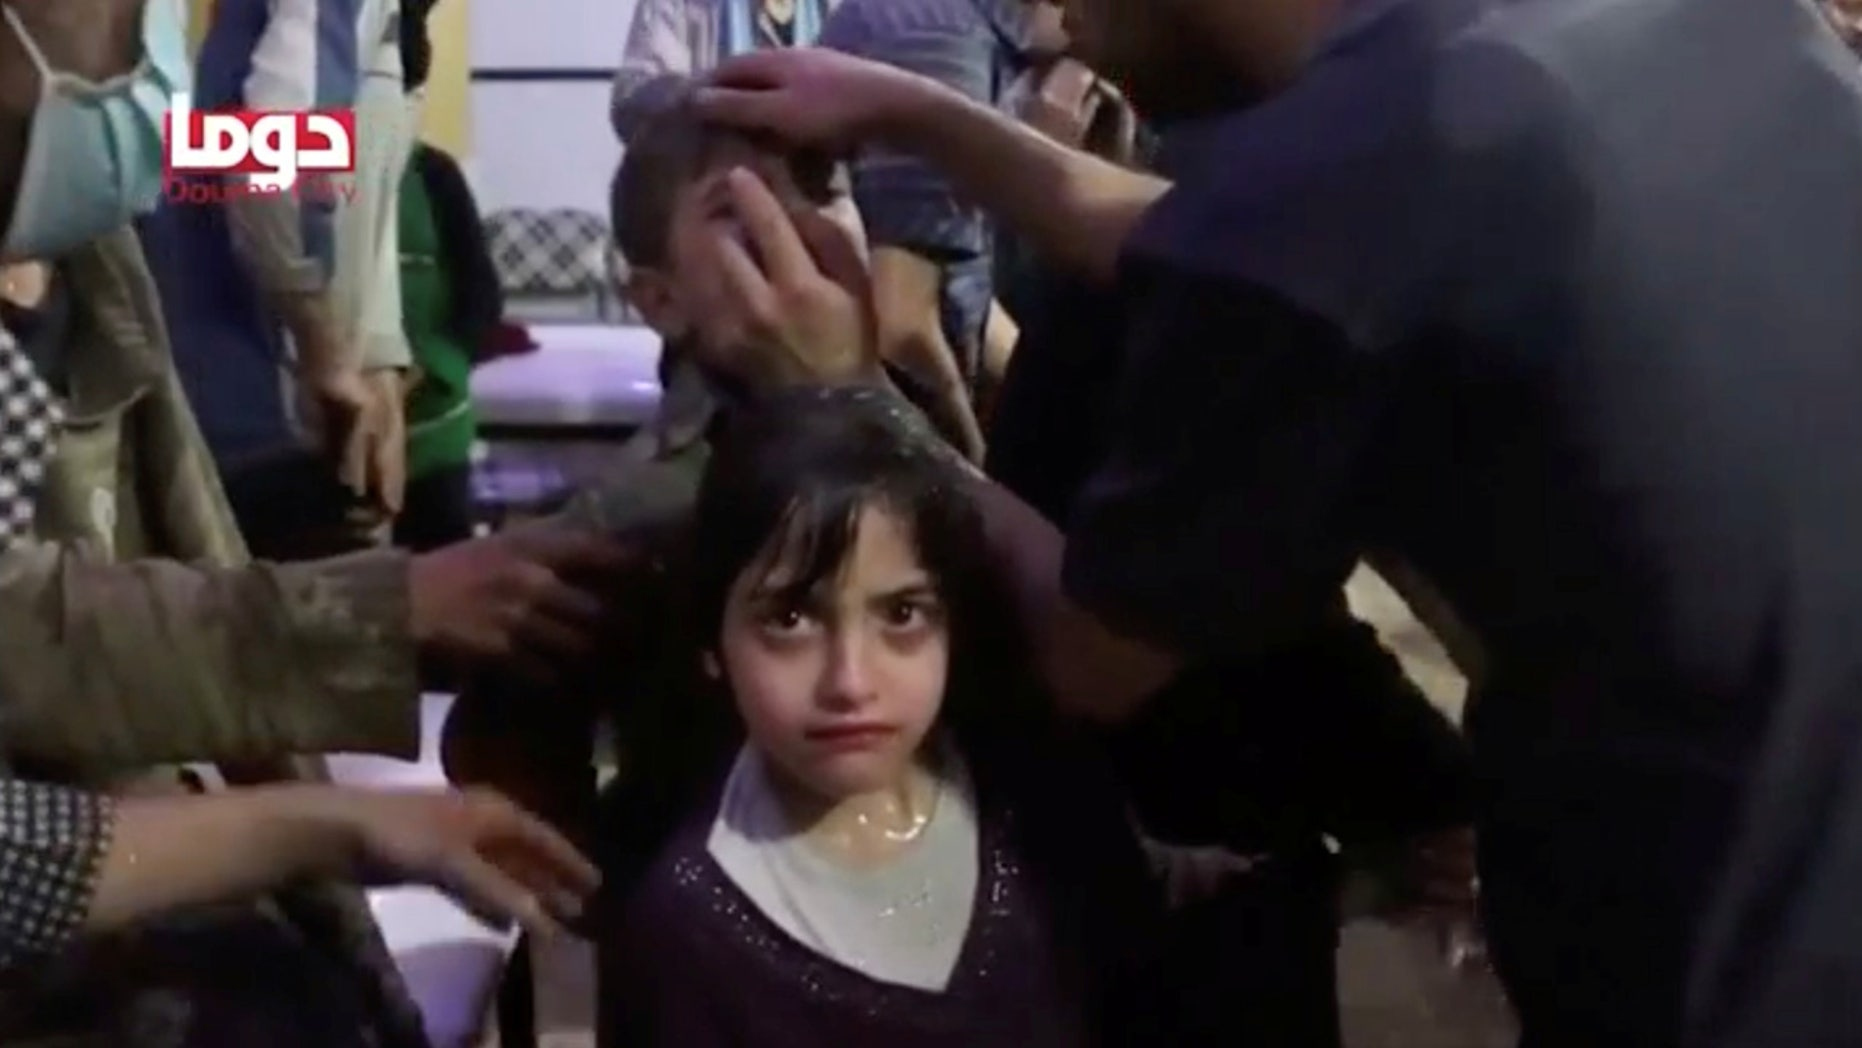 April 8: A girl looks on following alleged chemical weapons attack, in what is said to be Douma, Syria